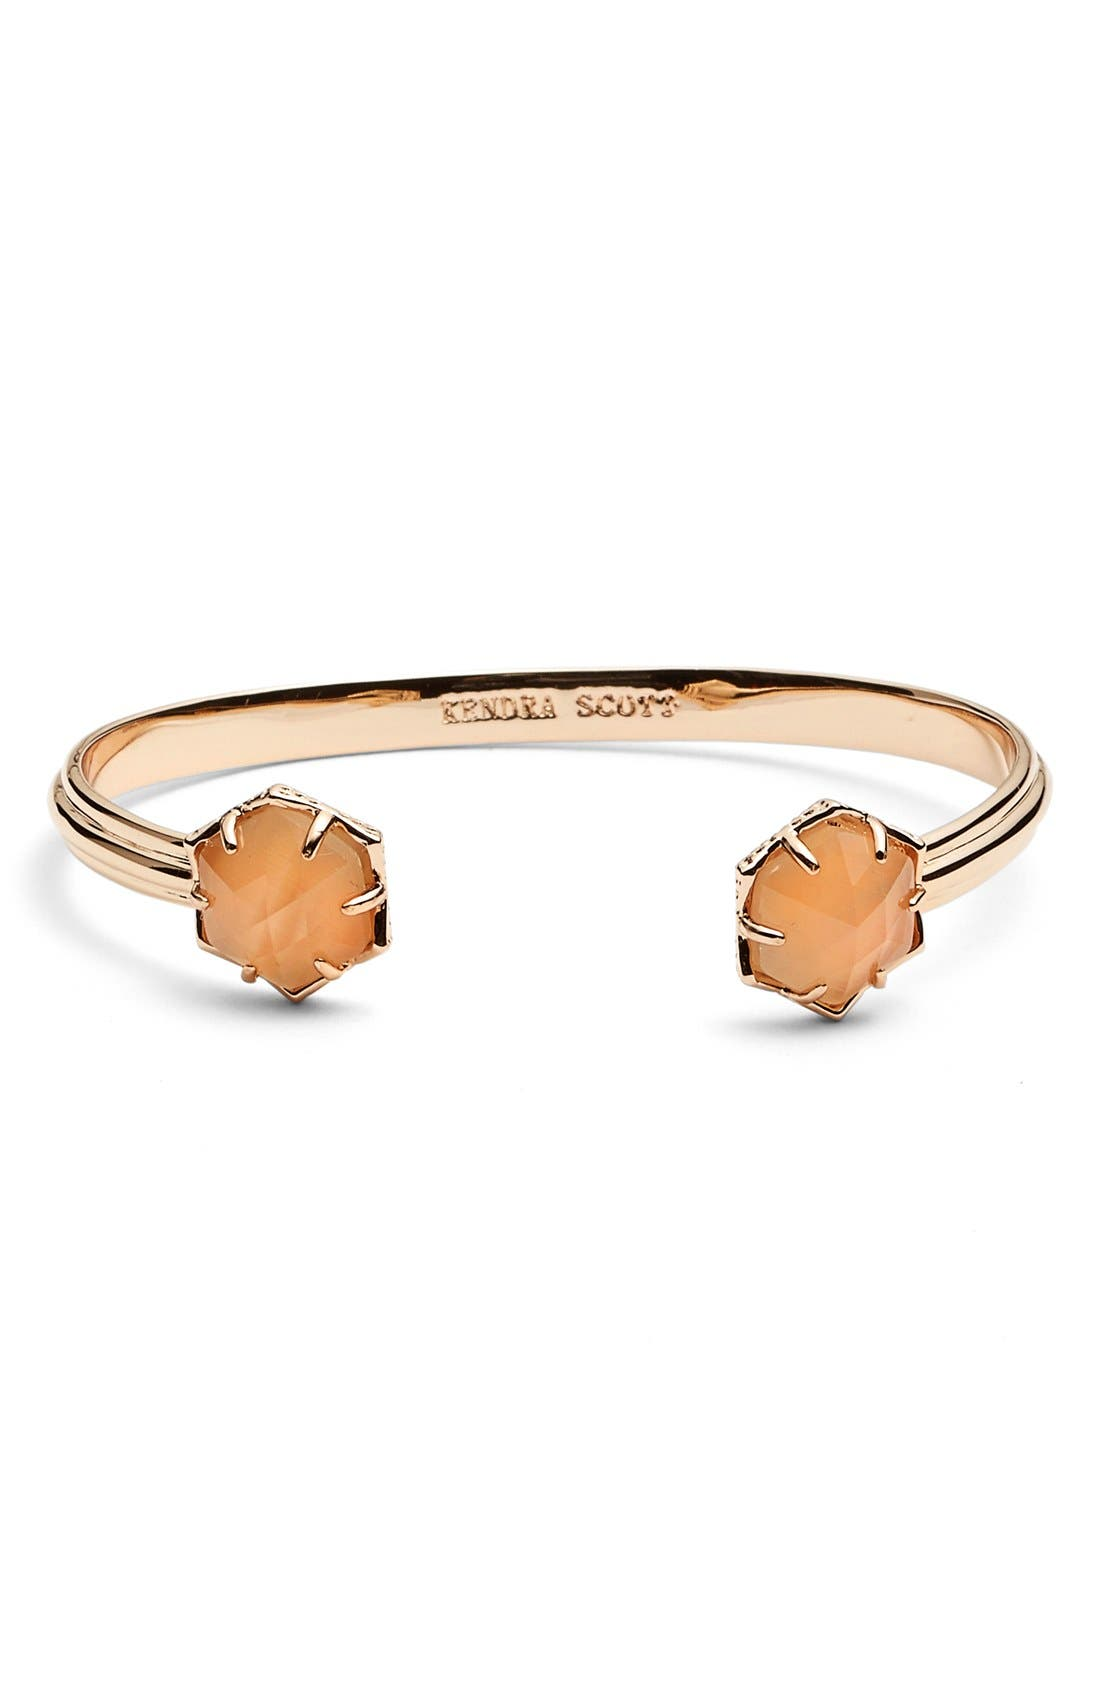 'Arden' Station Cuff,                             Main thumbnail 1, color,                             Rose Gold/ Peach Cats Eye